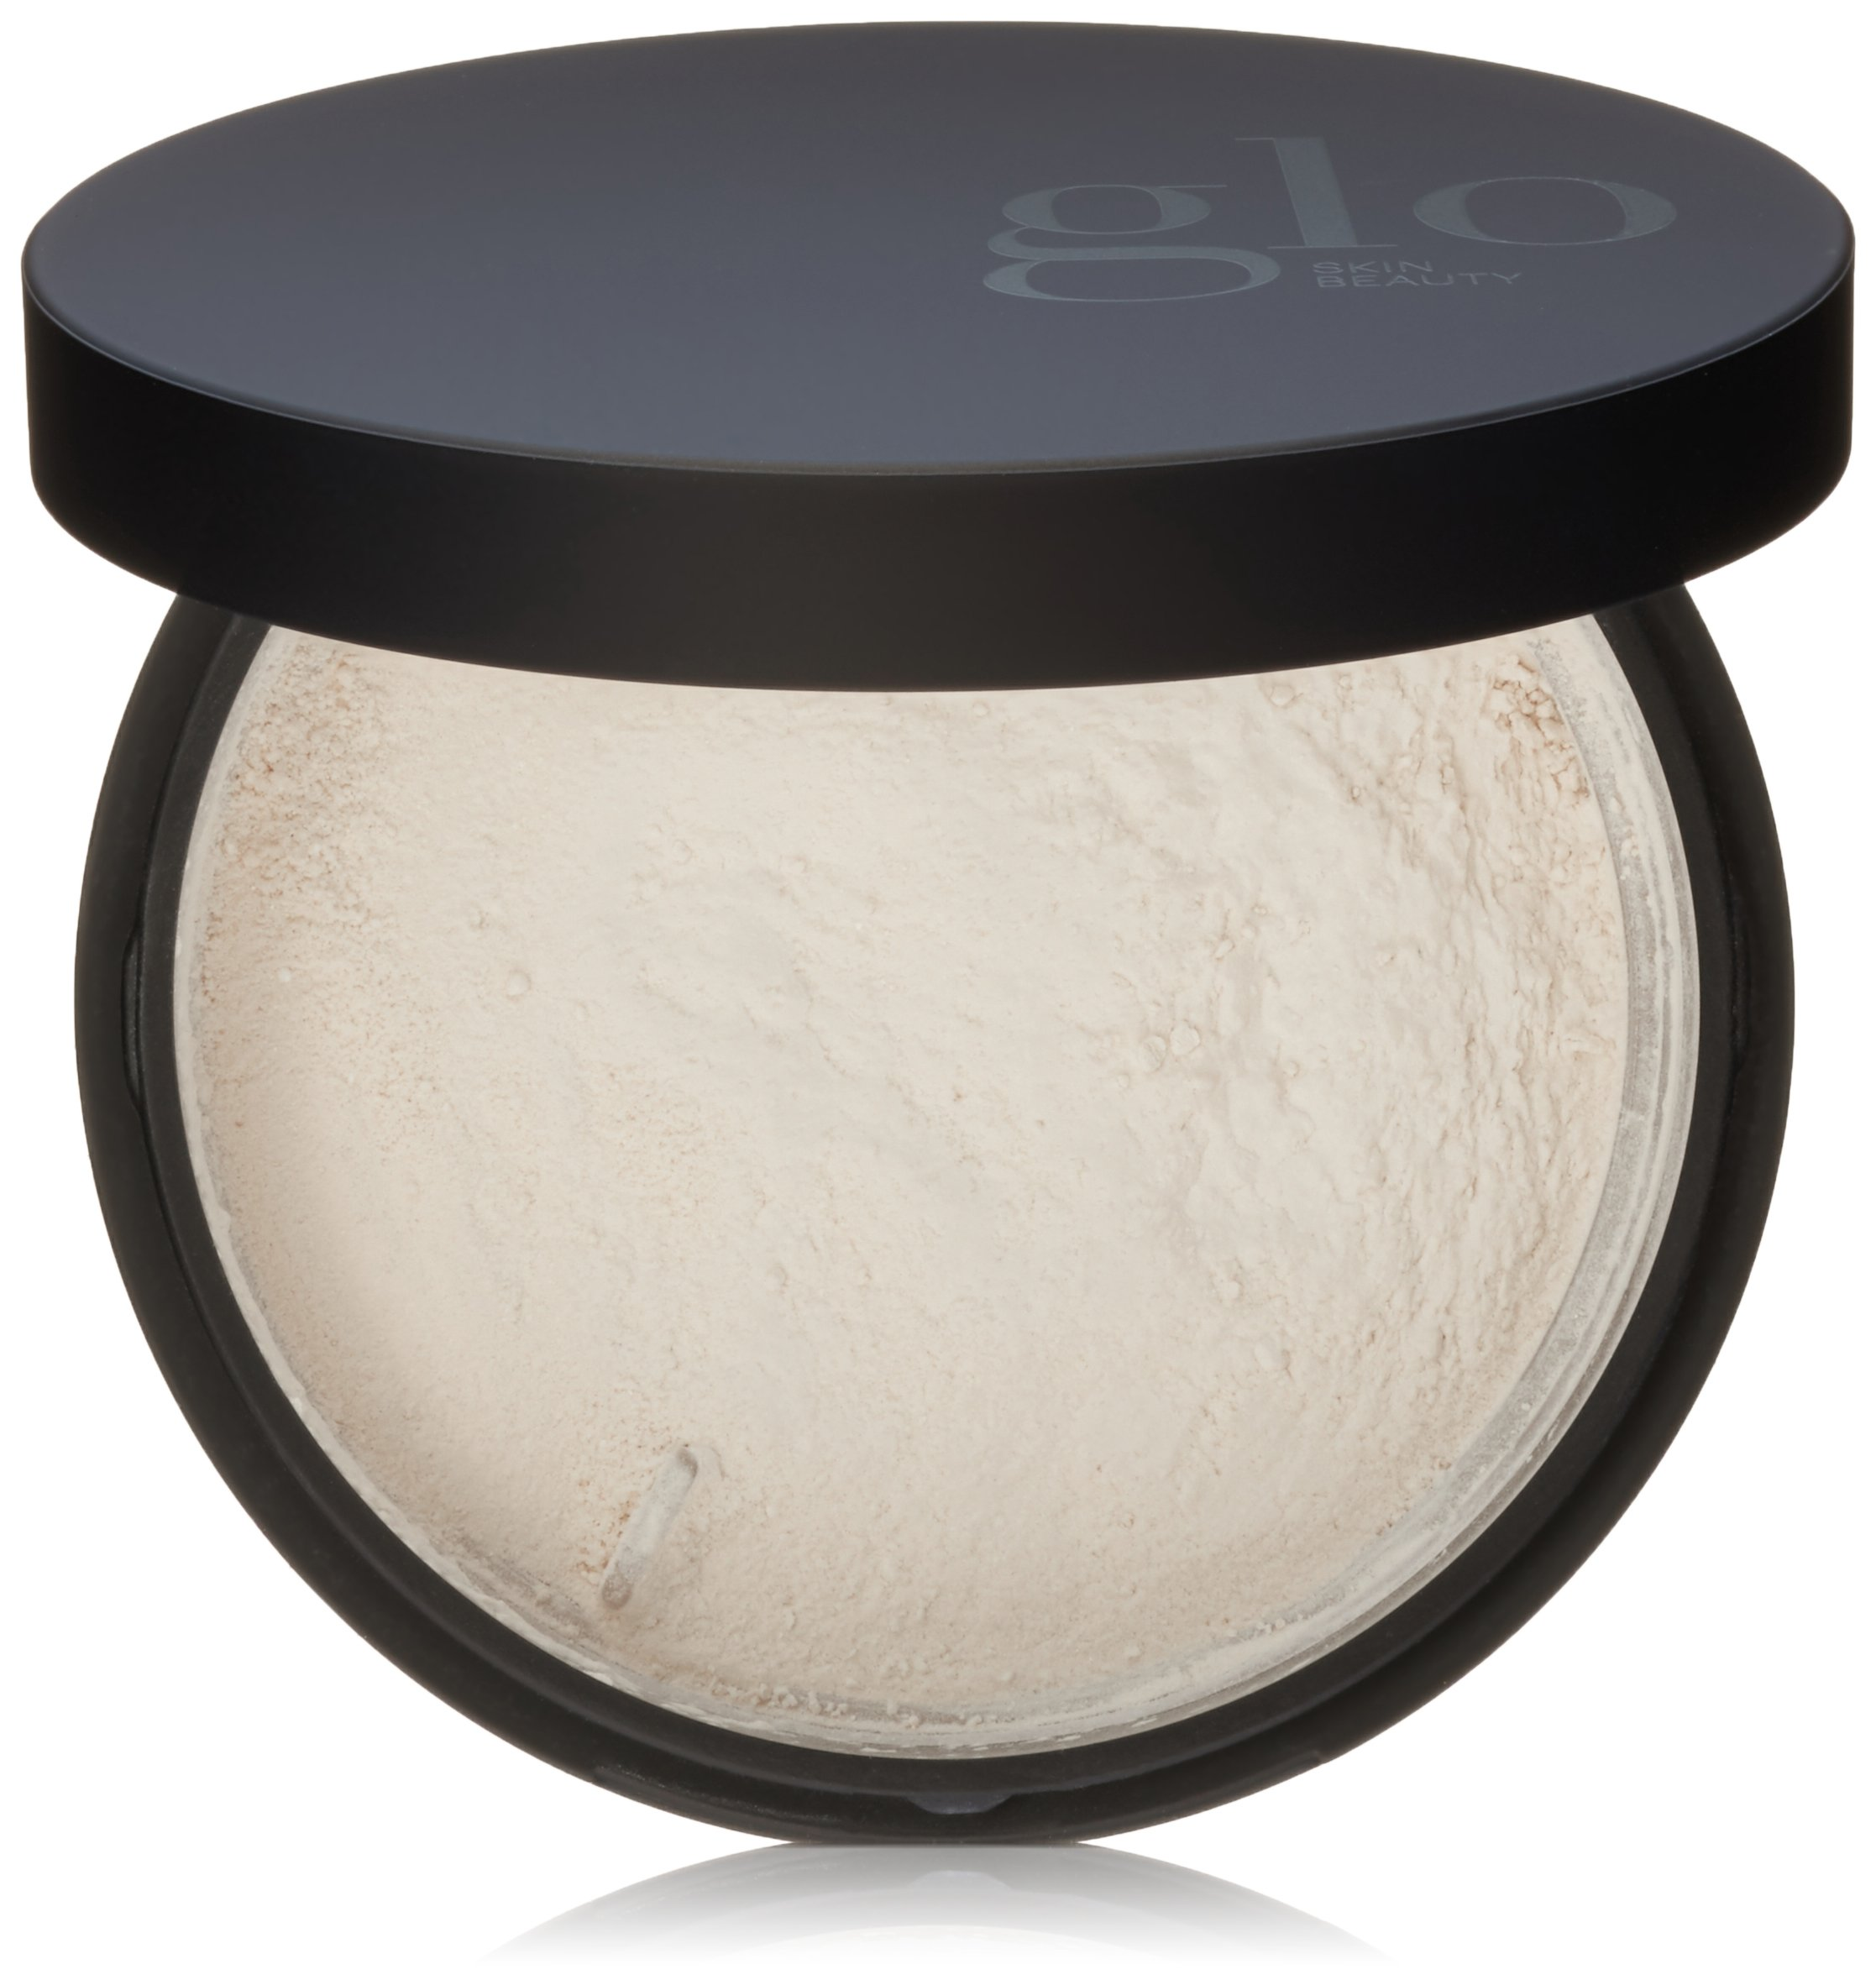 Glo Skin Beauty Luminous Setting Powder | Loose Makeup Setting Powder with Diamond Powder | Blur Fine Lines and Wrinkles